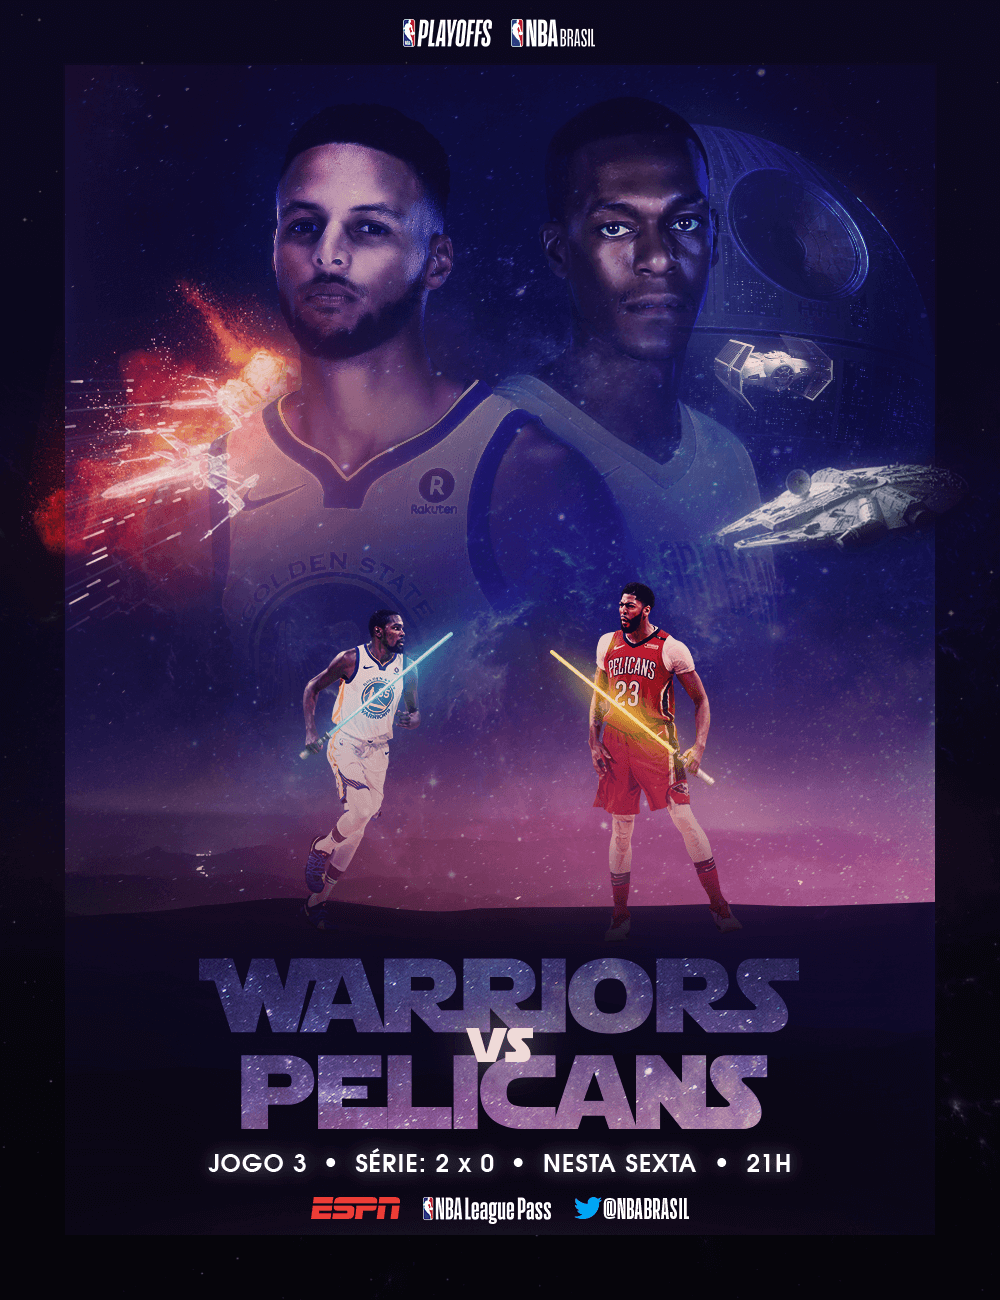 NBA-Especial-Playoffs-Star-Wars-Tunein-Warriors-Pelicans